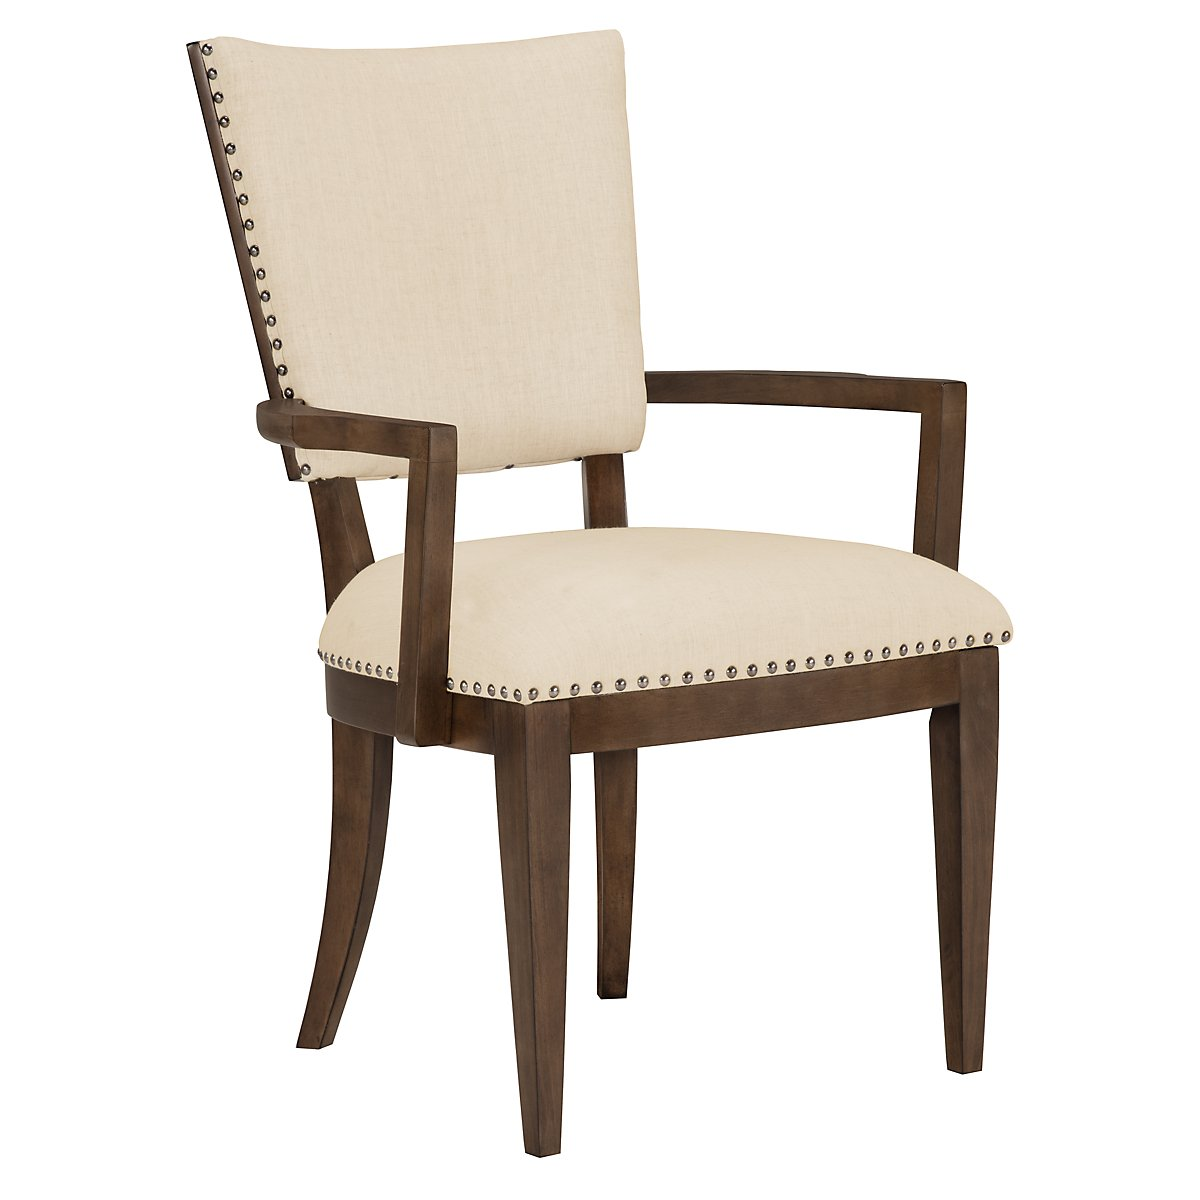 Preston Mid Tone Upholstered Arm Chair